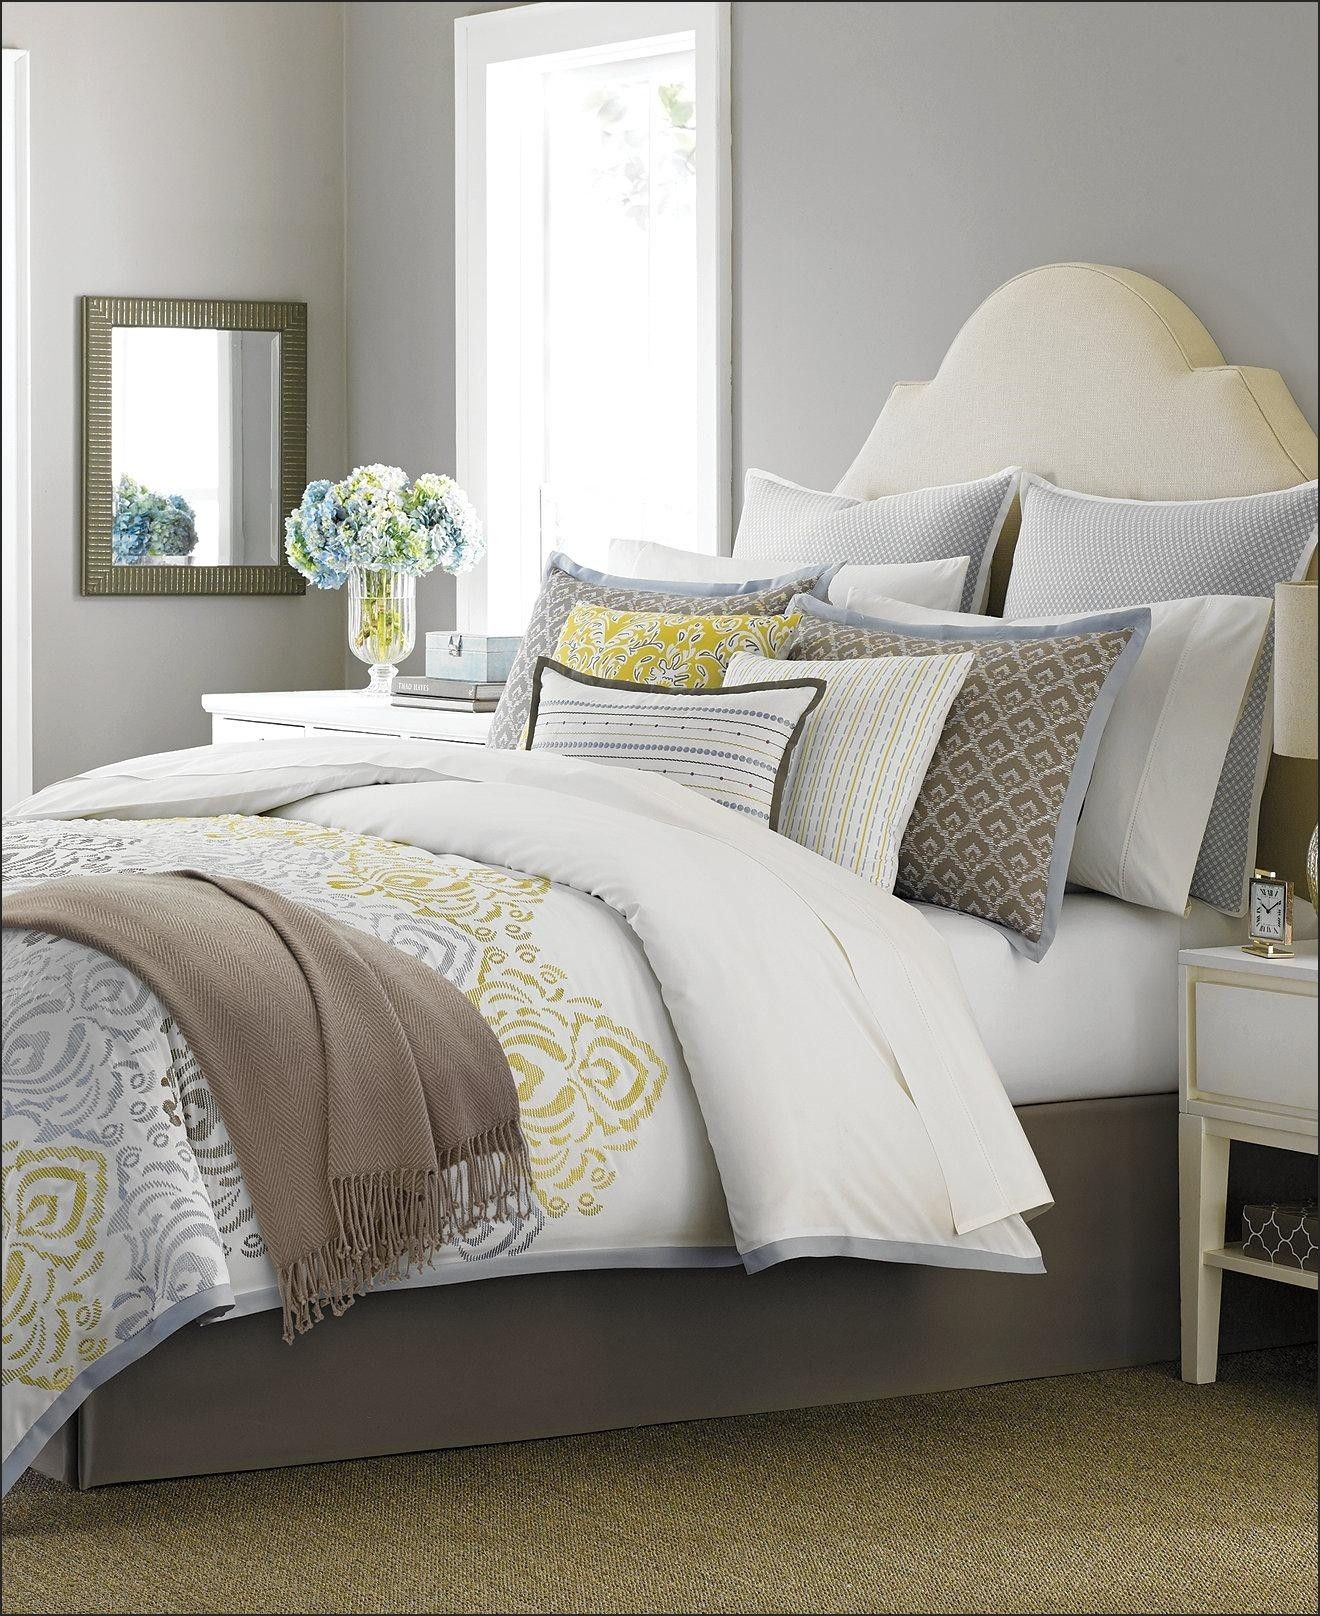 Luxury Gray Comforter Sets King Comforter sets, Luxury